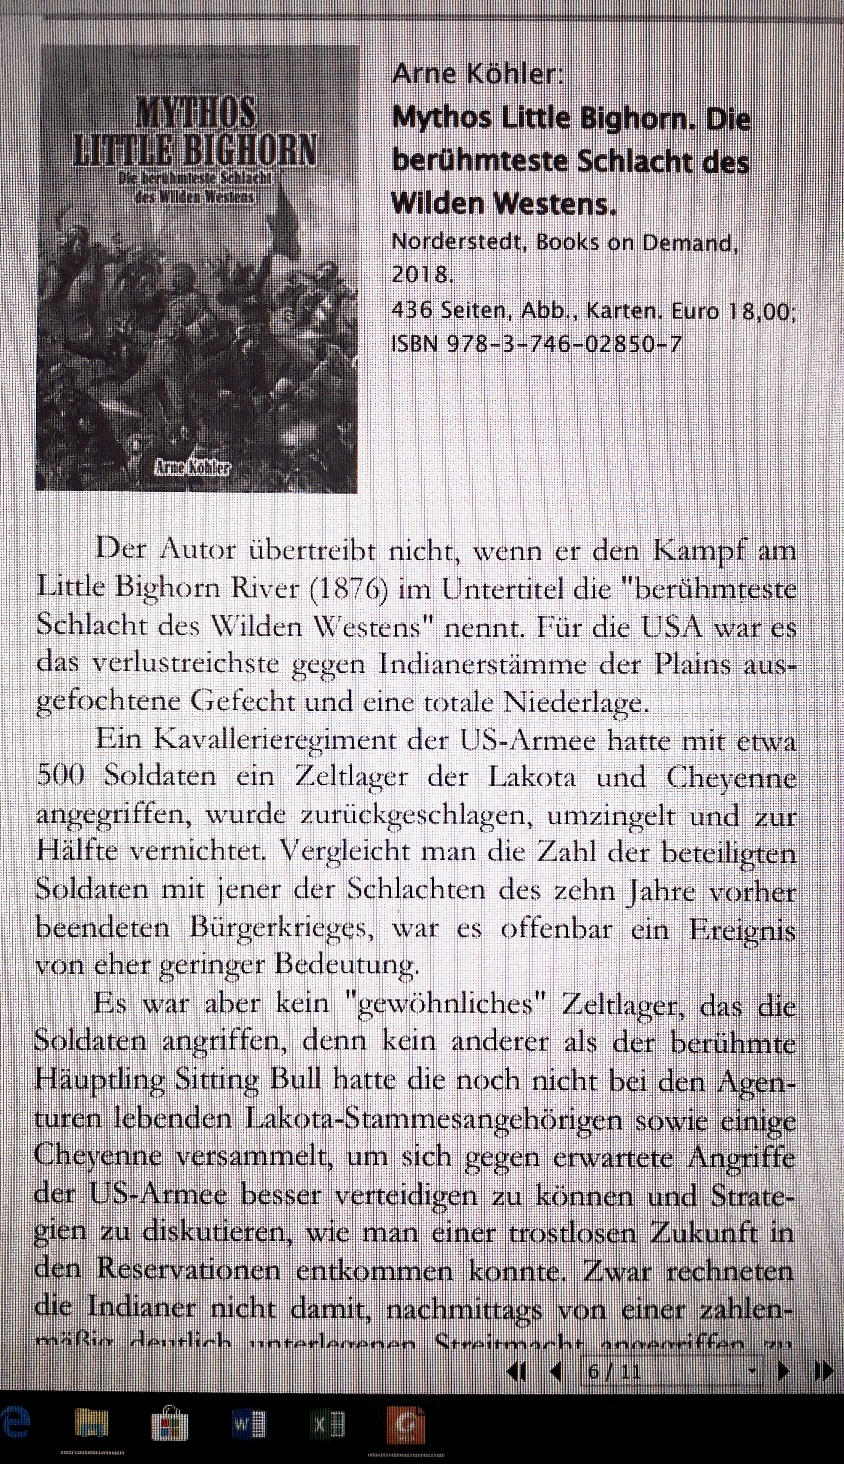 "Rezension von ""Mythos Littlebighorn"" im AmerIndian Research 03-2018"